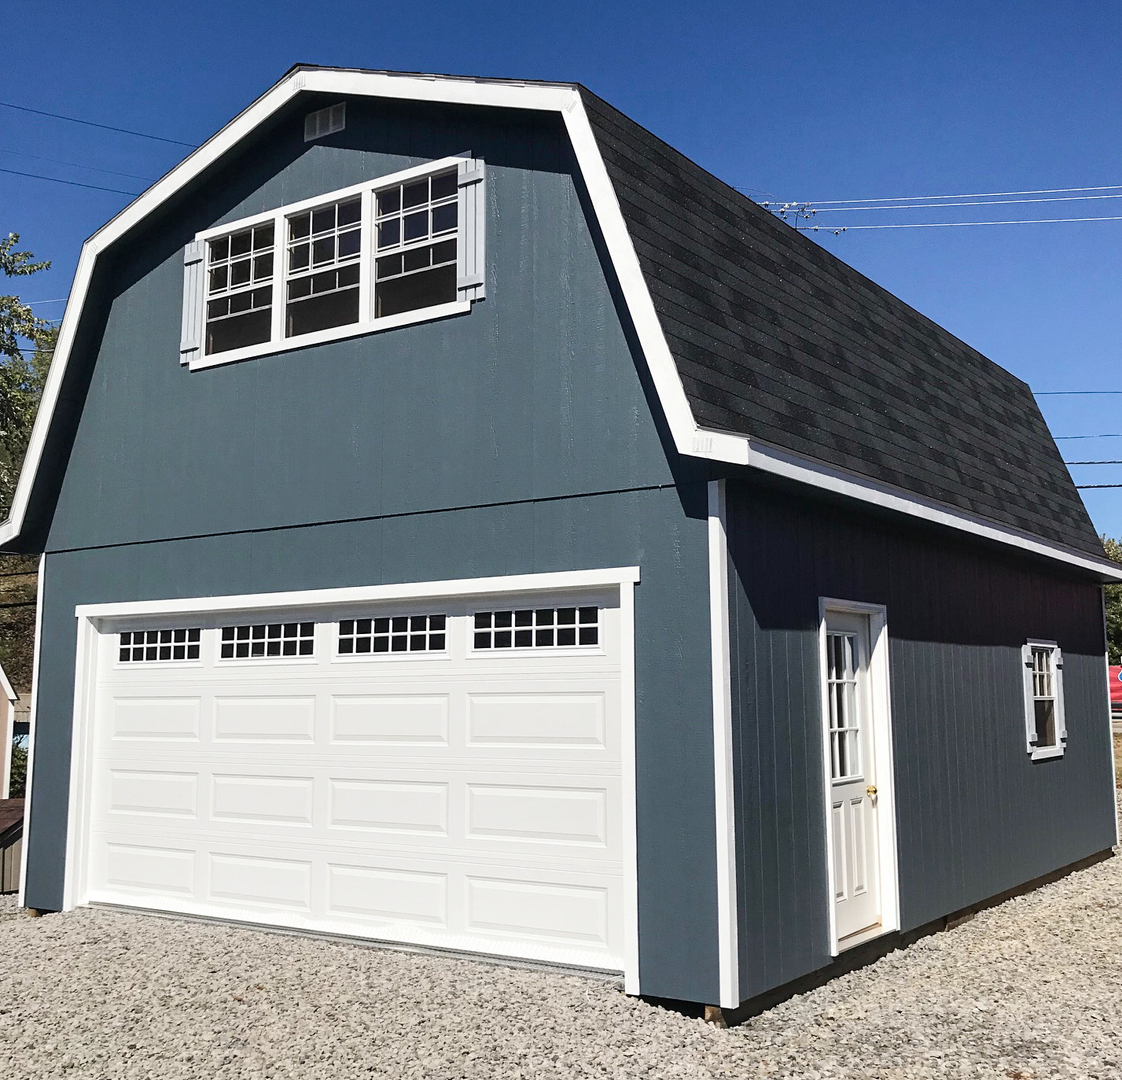 on barns barn add all file s west ons one and builders garages in pole michigan